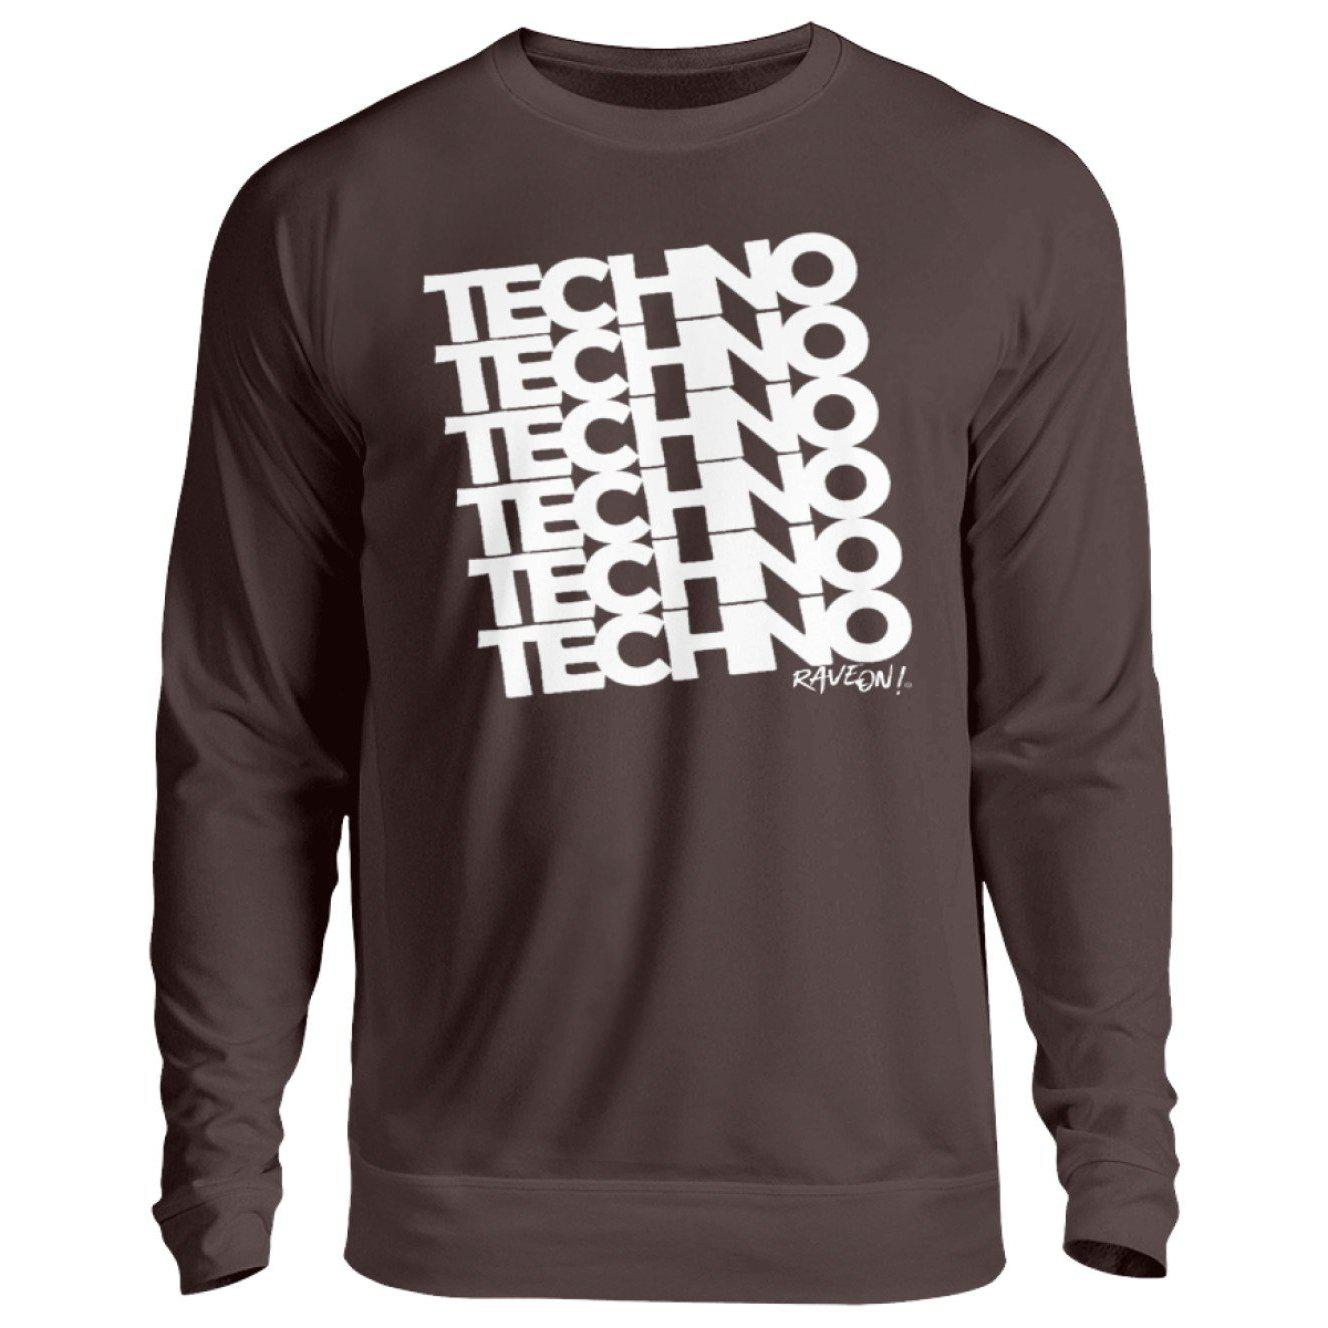 TECHNO 6 Rave ON!® T-Shirt - Unisex Pullover-Unisex Sweatshirt-Rave-On! I www.rave-on.shop I Deine Rave & Techno Szene Shop I apparel, bopullover, boyfriend pullover, boypullover, Design - TECHNO 6 Rave ON!® T-Shirt, Electro, house, on, On!®, pullover boy, pullover boyfriend, rave, rave apparel, rave clothing, rave gear, rave on, Rave On!®, rave wear, raver, techno, ® - Sexy Festival Streetwear , Clubwear & Raver Style